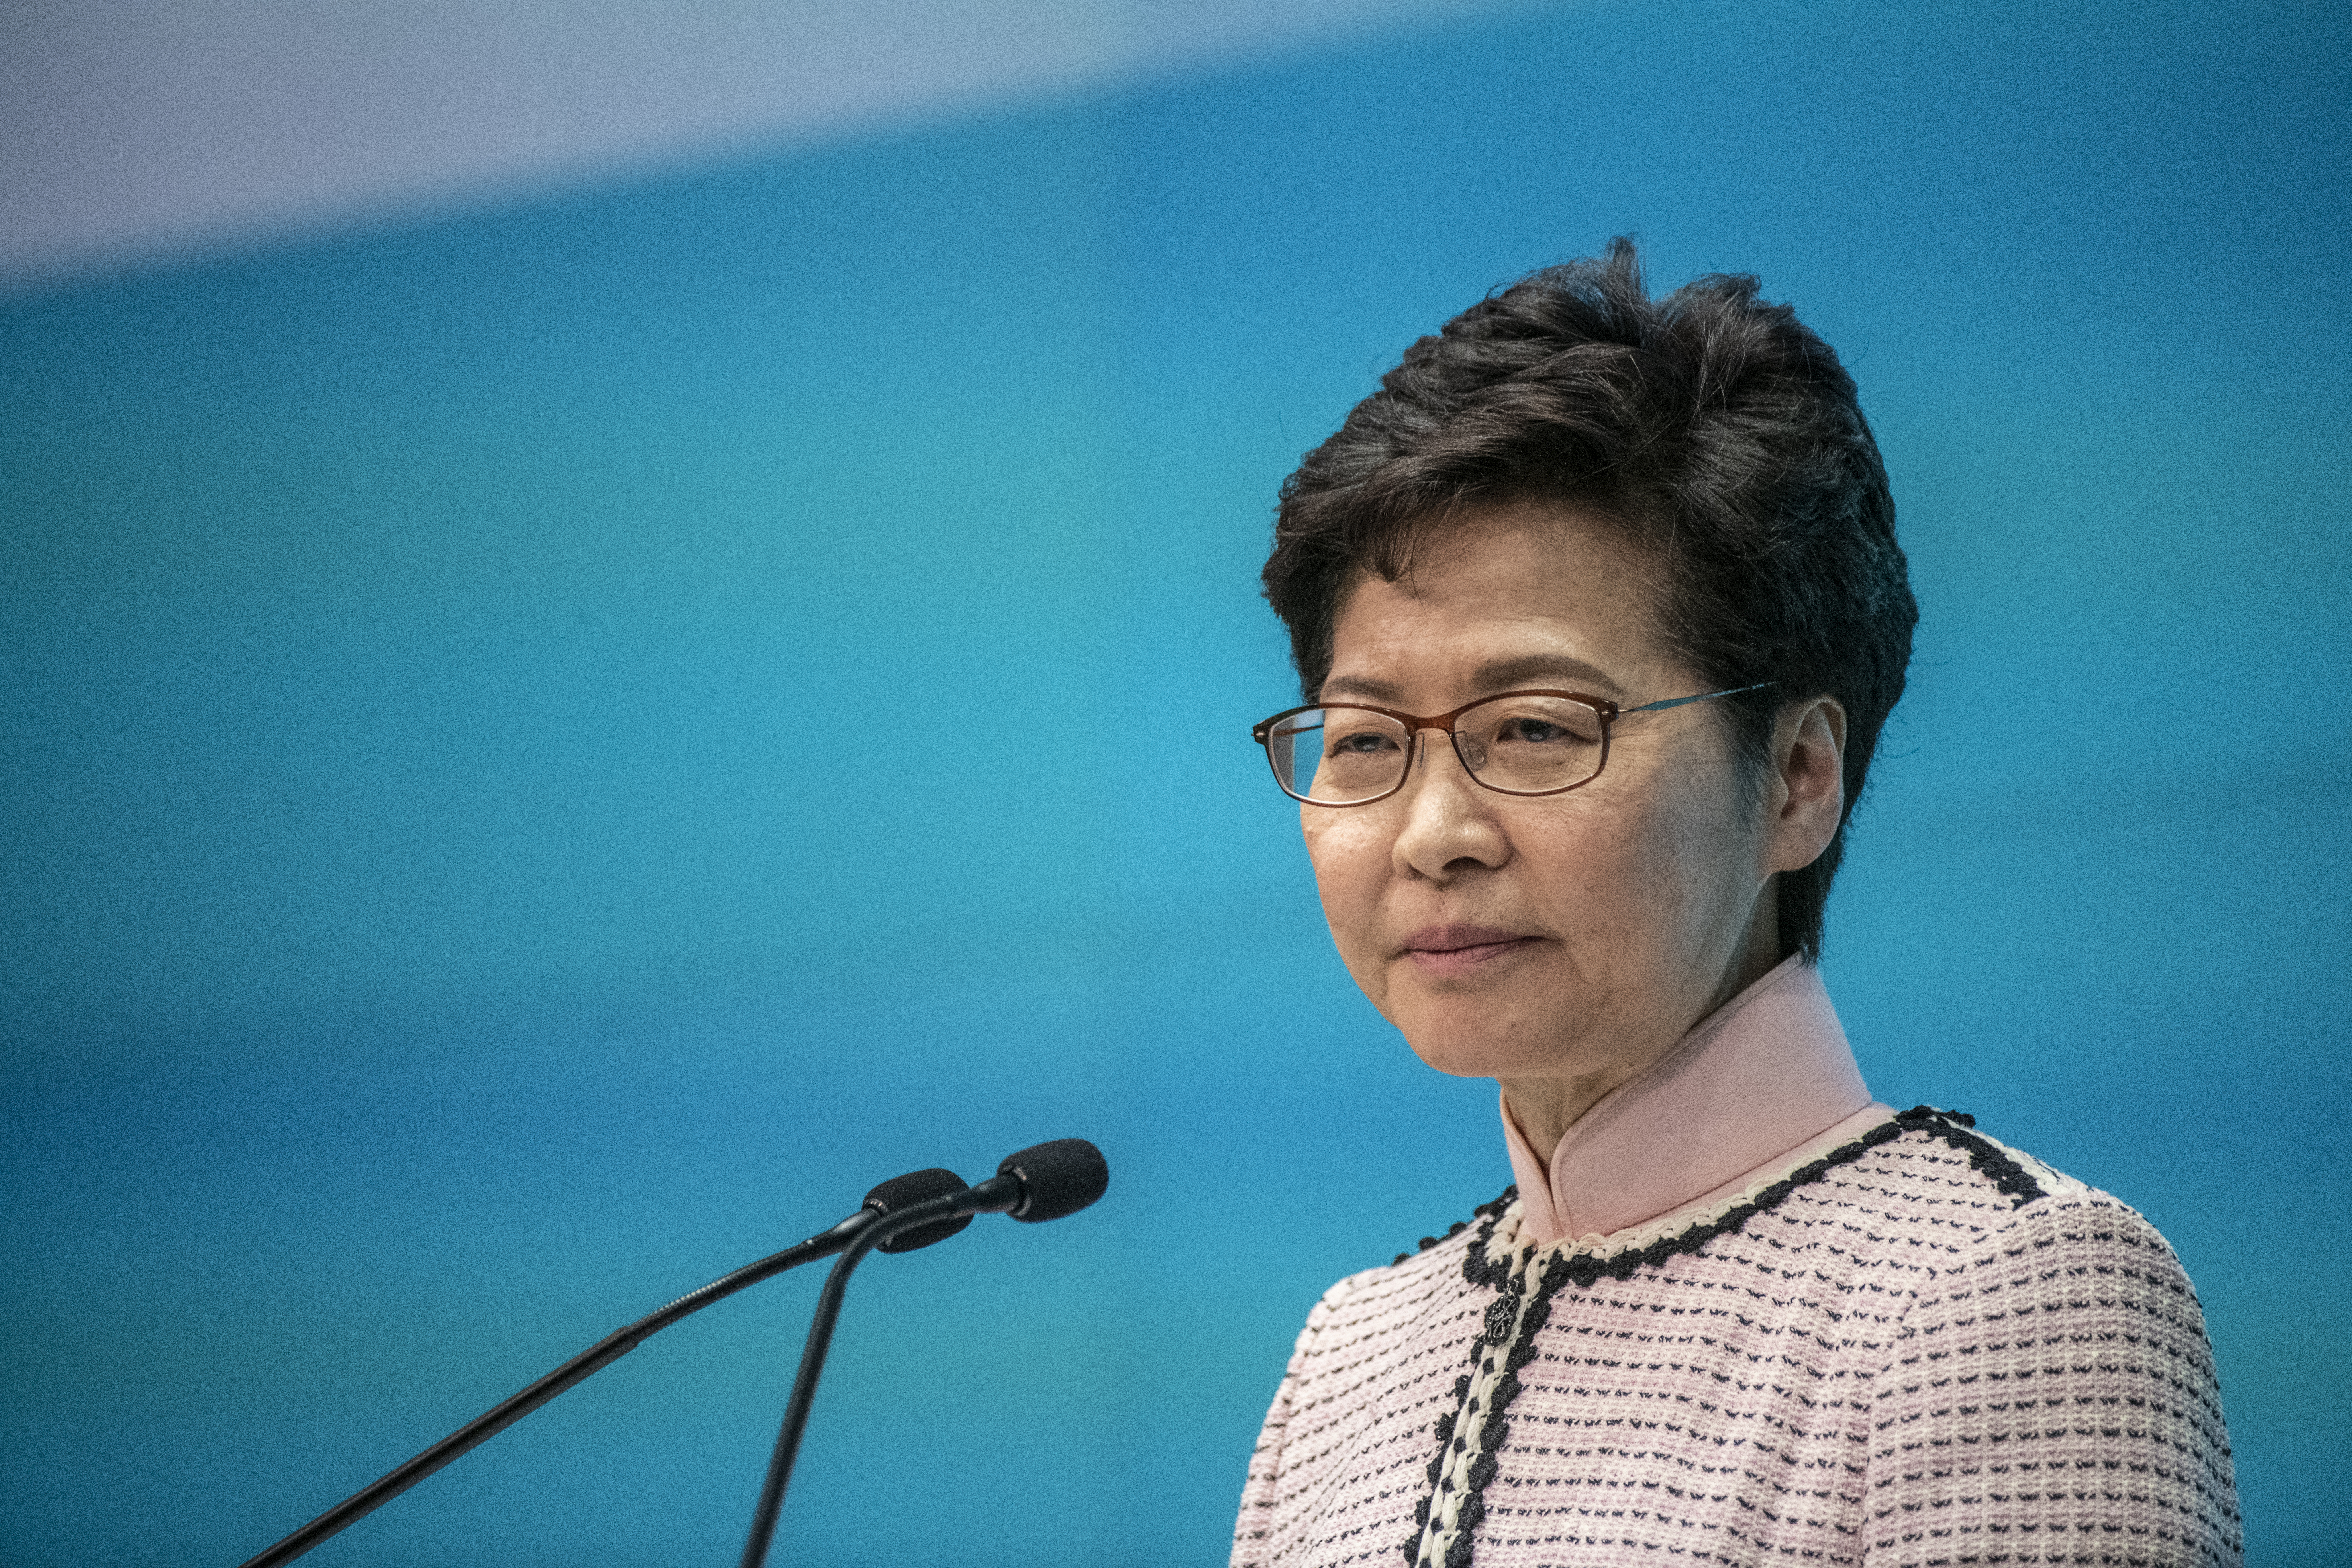 Hong Kong Chief Executive Carrie Lam is seen during a press conference in Hong Kong, China, October 16, 2019